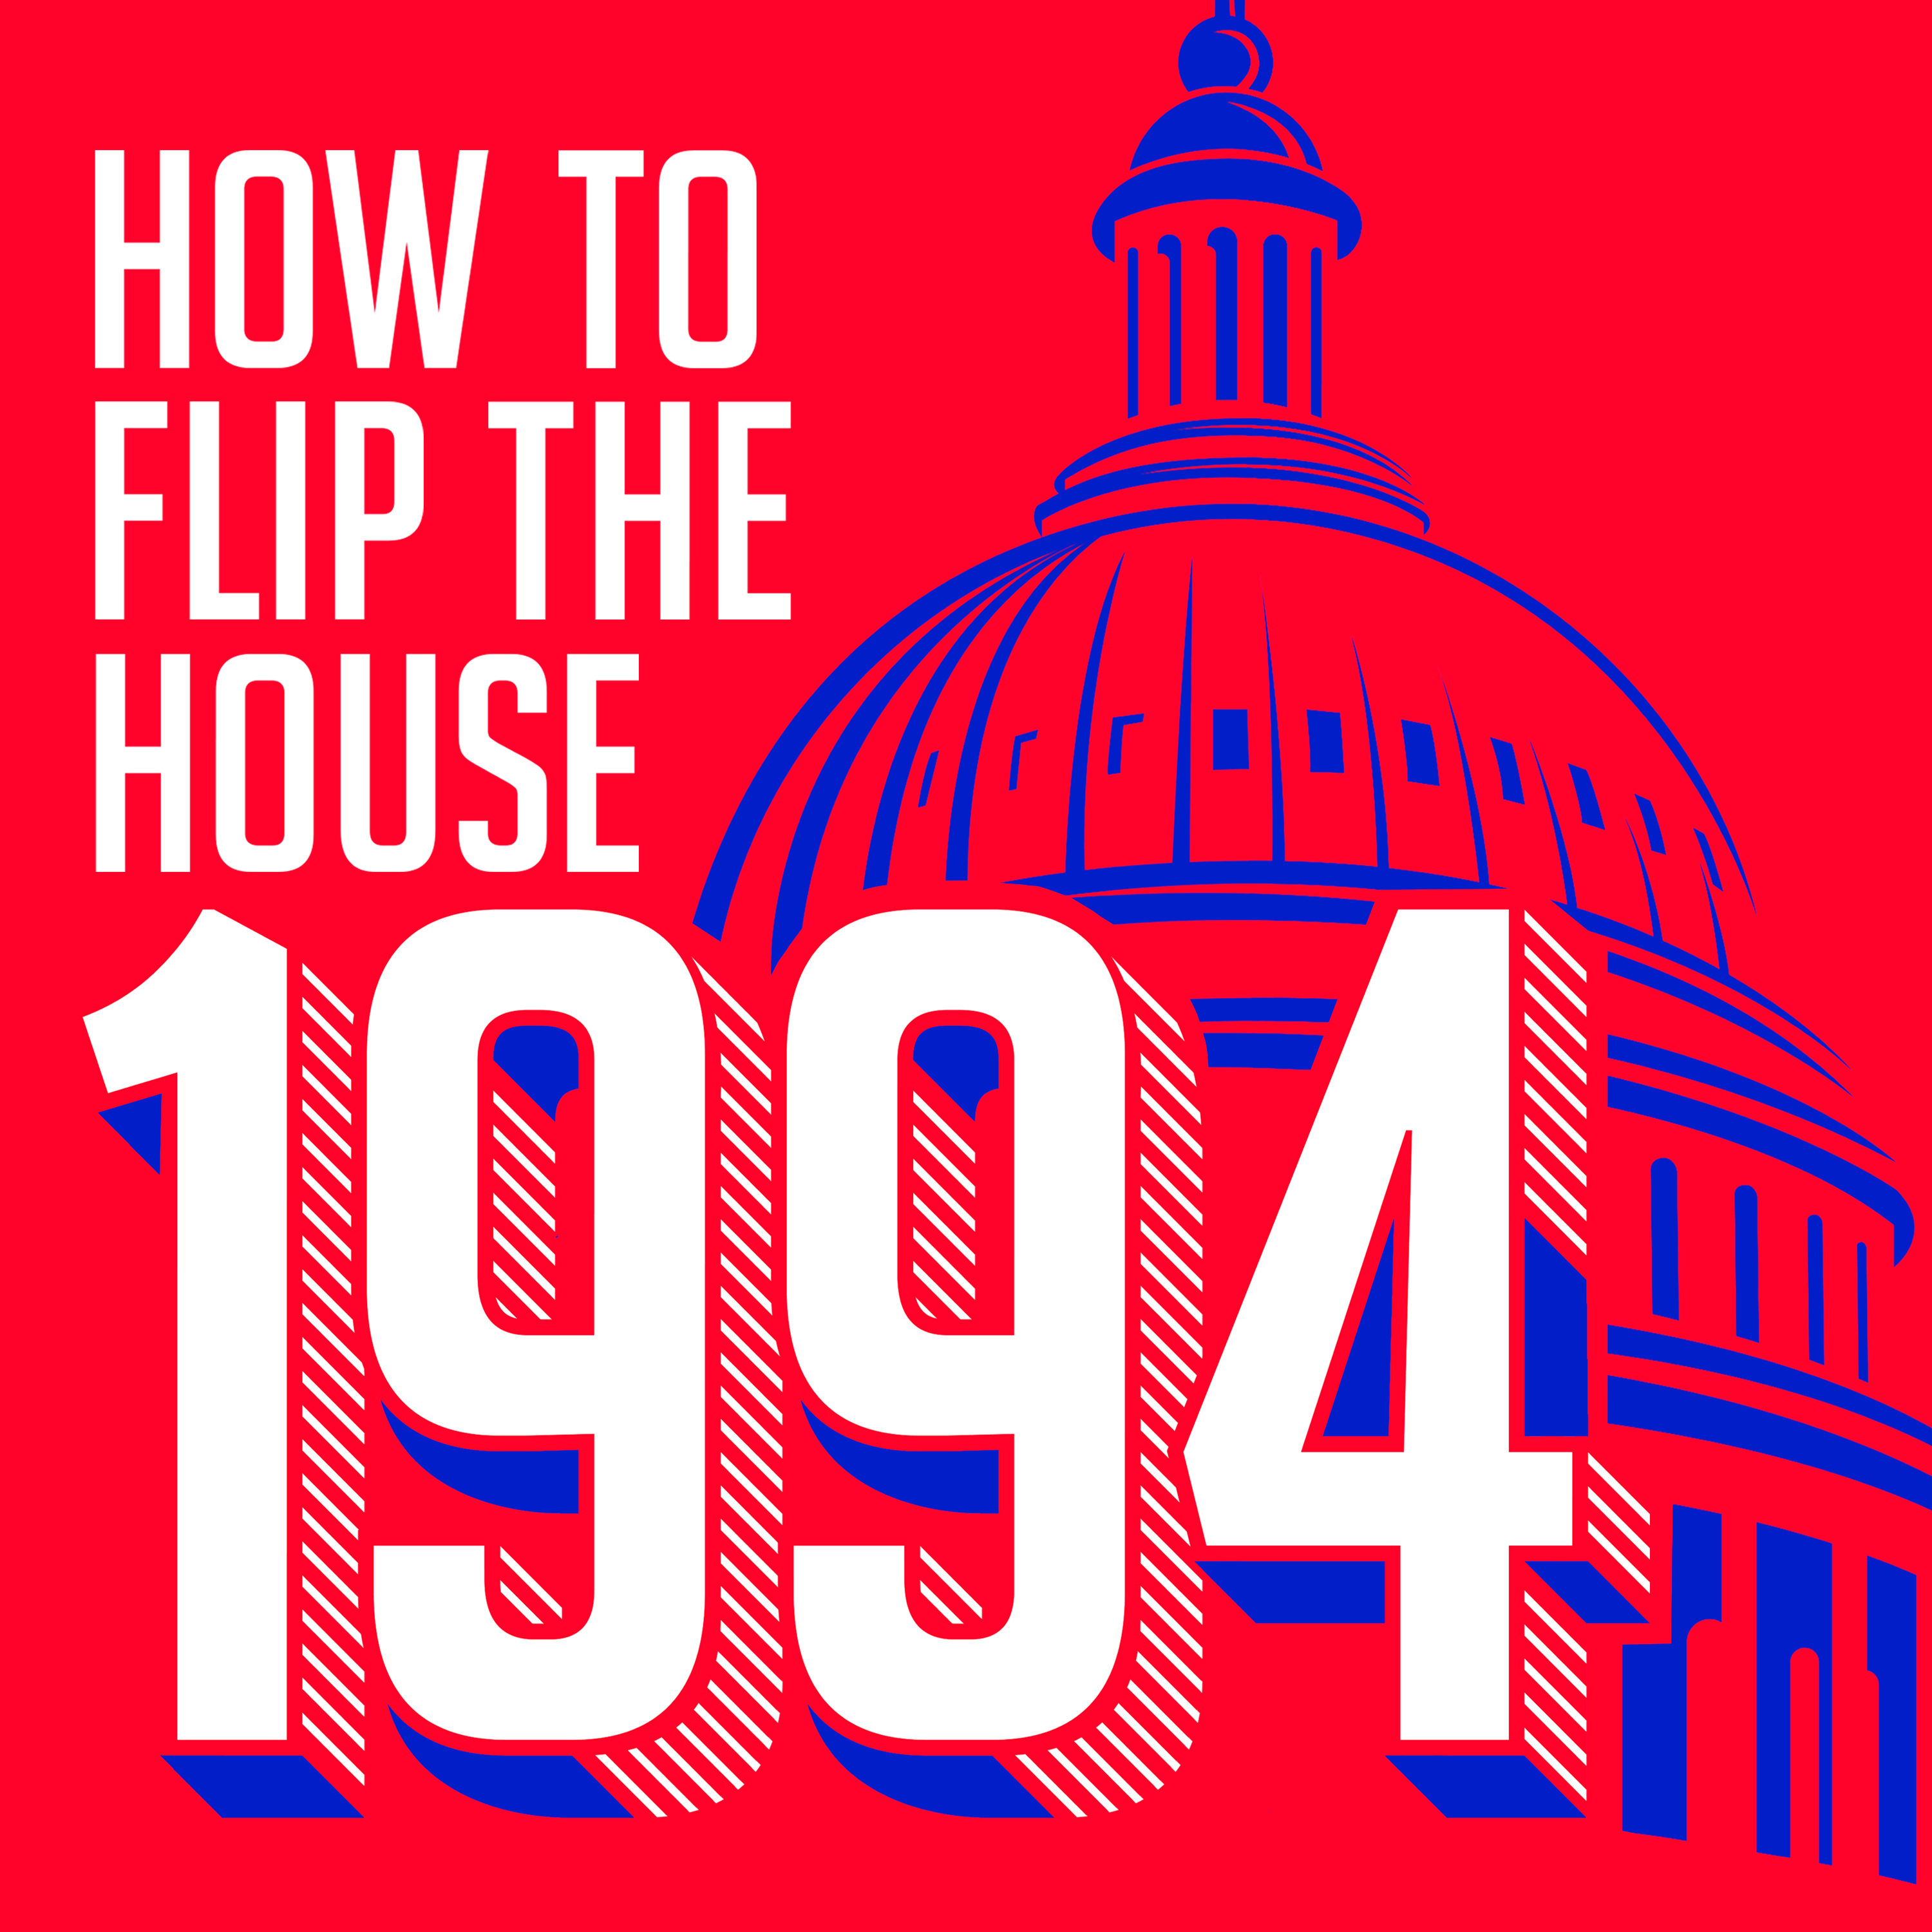 The 1994 Republican revolution